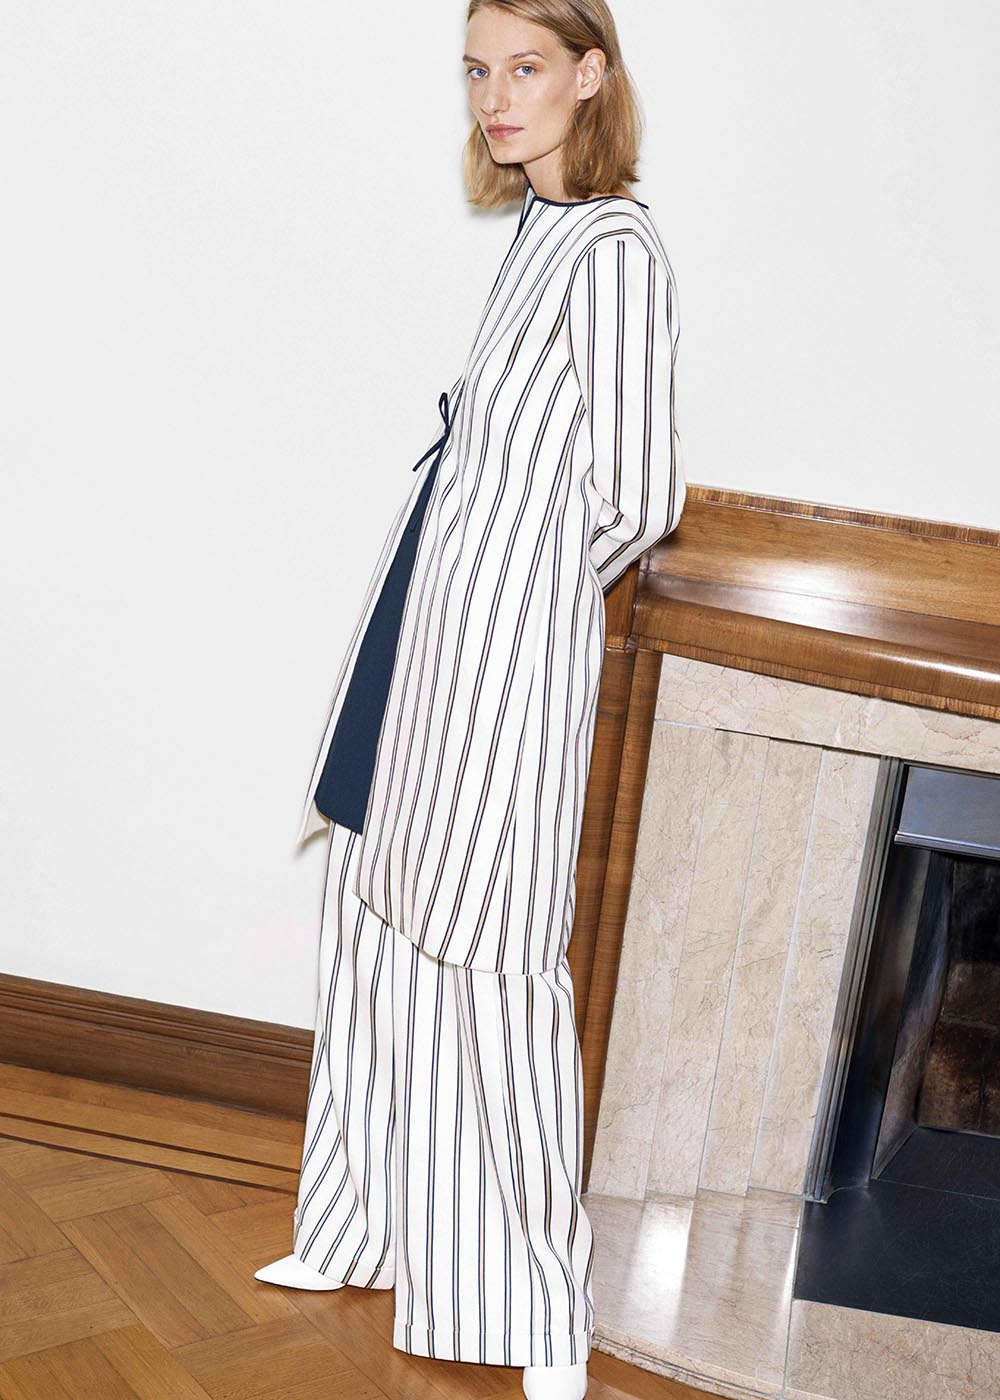 Today for Lookbook Friday we are looking at some pieces from J&M Davidson's SS2018 line. A British company originally know for hand bags and belts they now make women's ready-to-wear